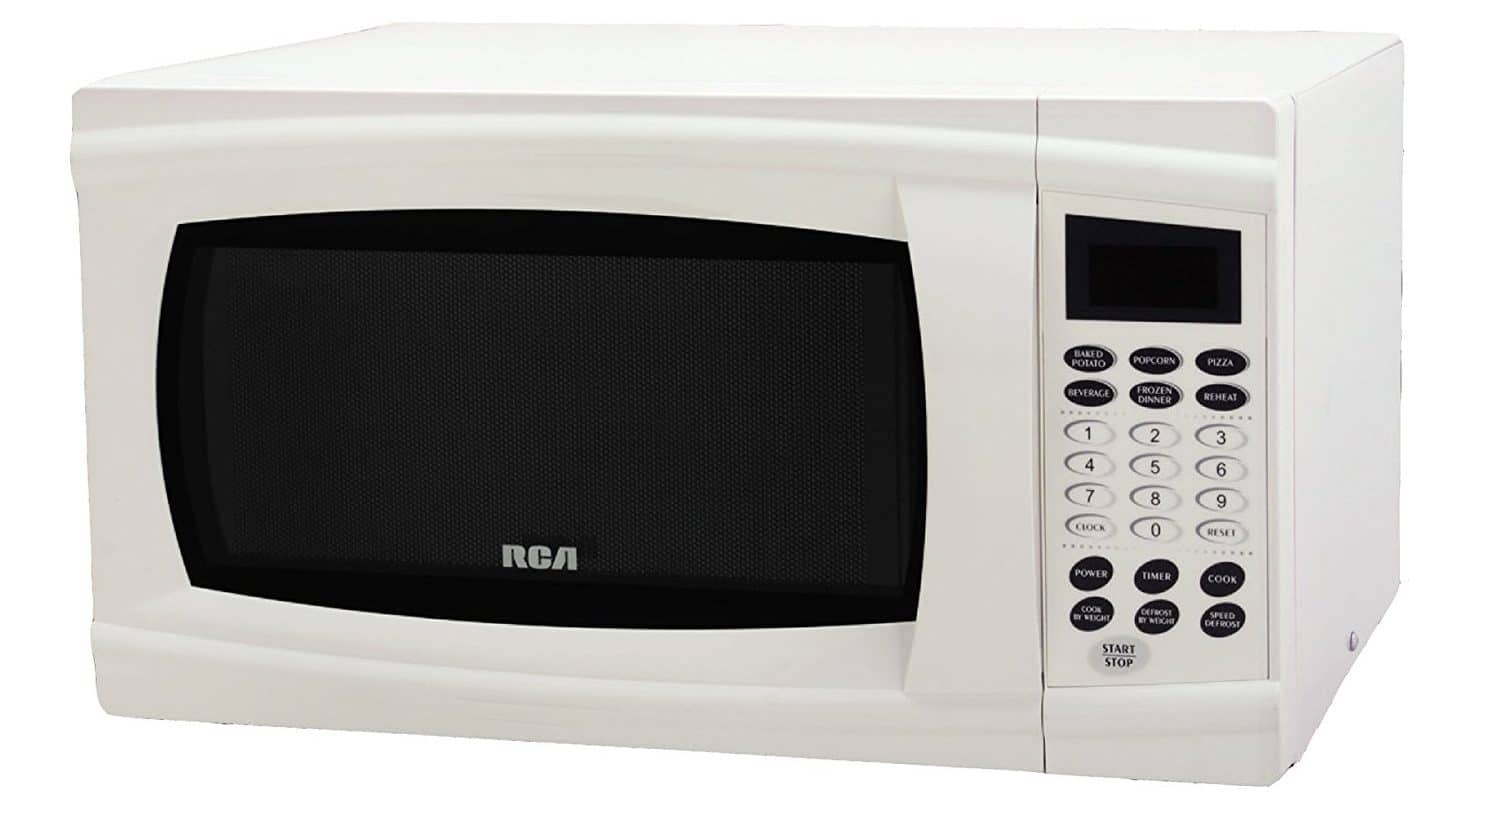 White cubic feet microwave with soft-touch control panel and kitchen timer.